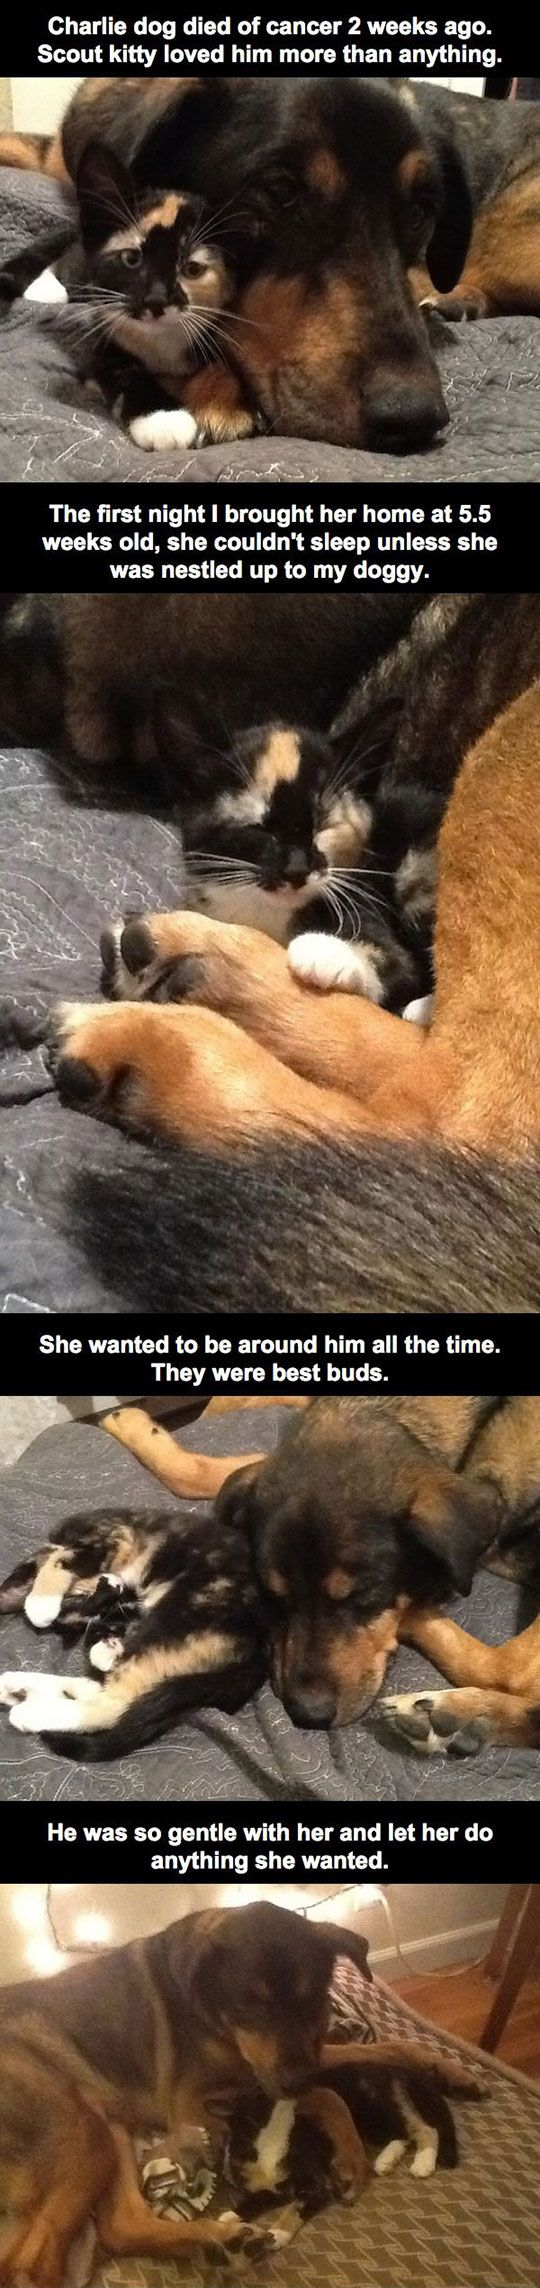 best pets u animals images on pinterest funny animals animals